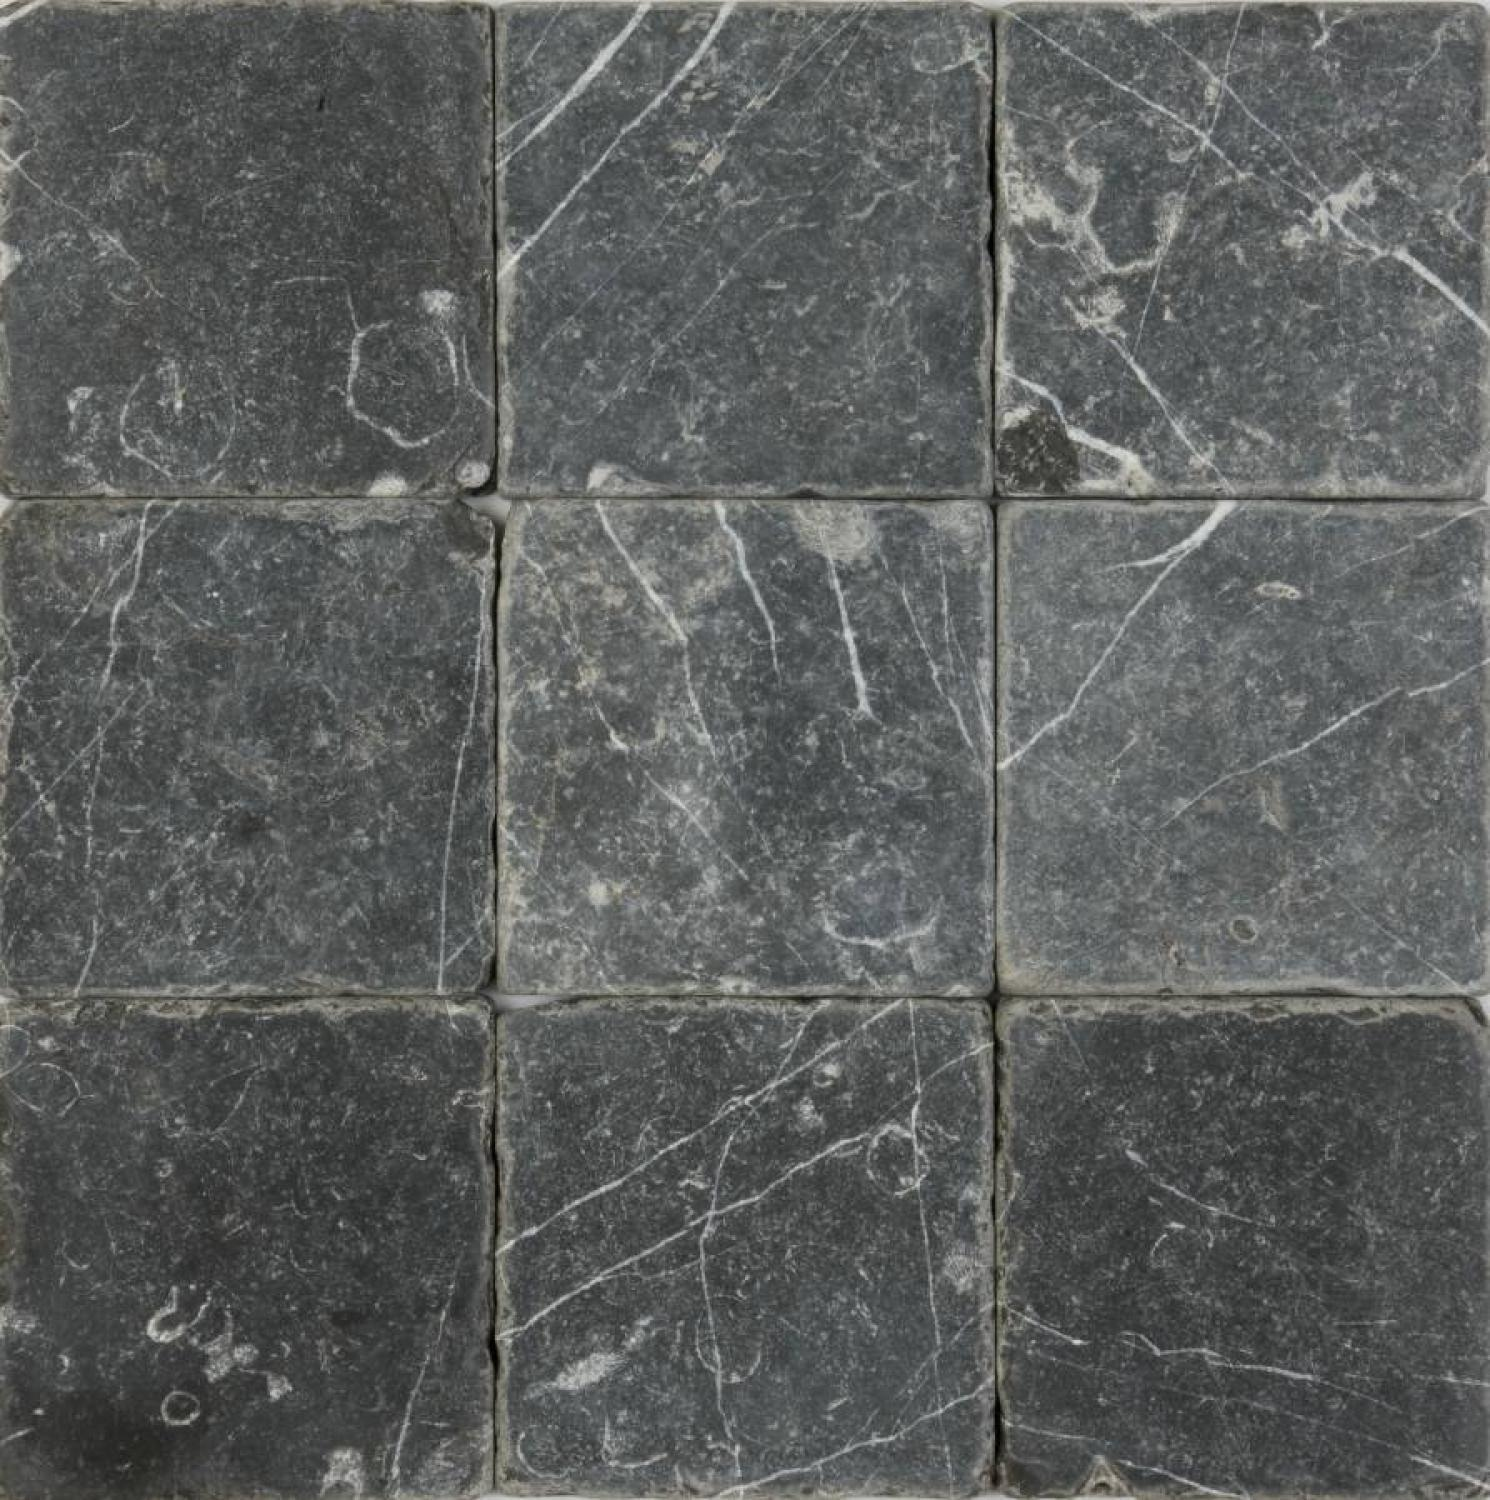 Black tumbled marble cobblestones